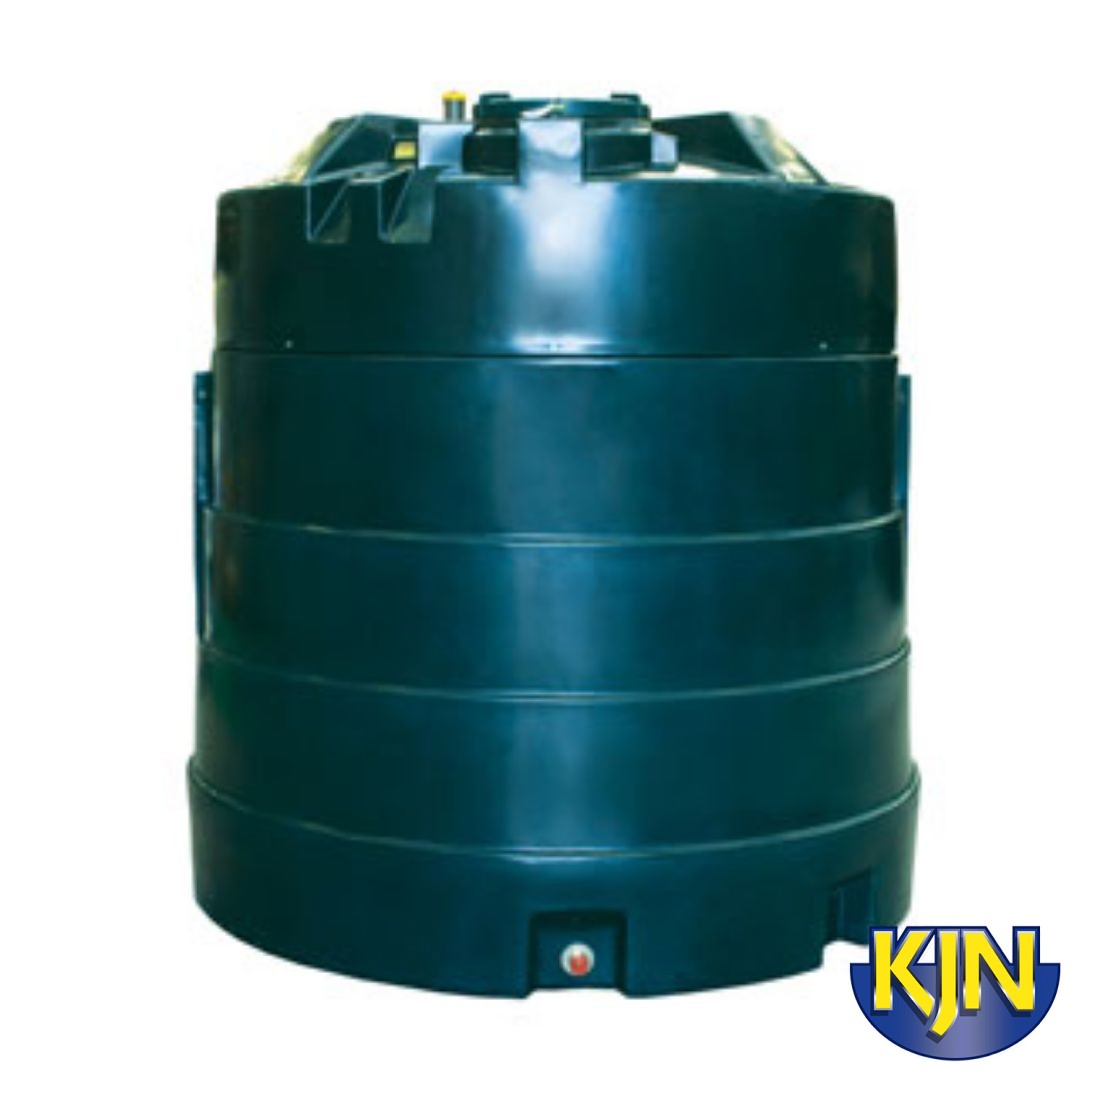 Titan Ecosafe Bunded Oil Tank 5000 Litre Bottom Or Top Outlet